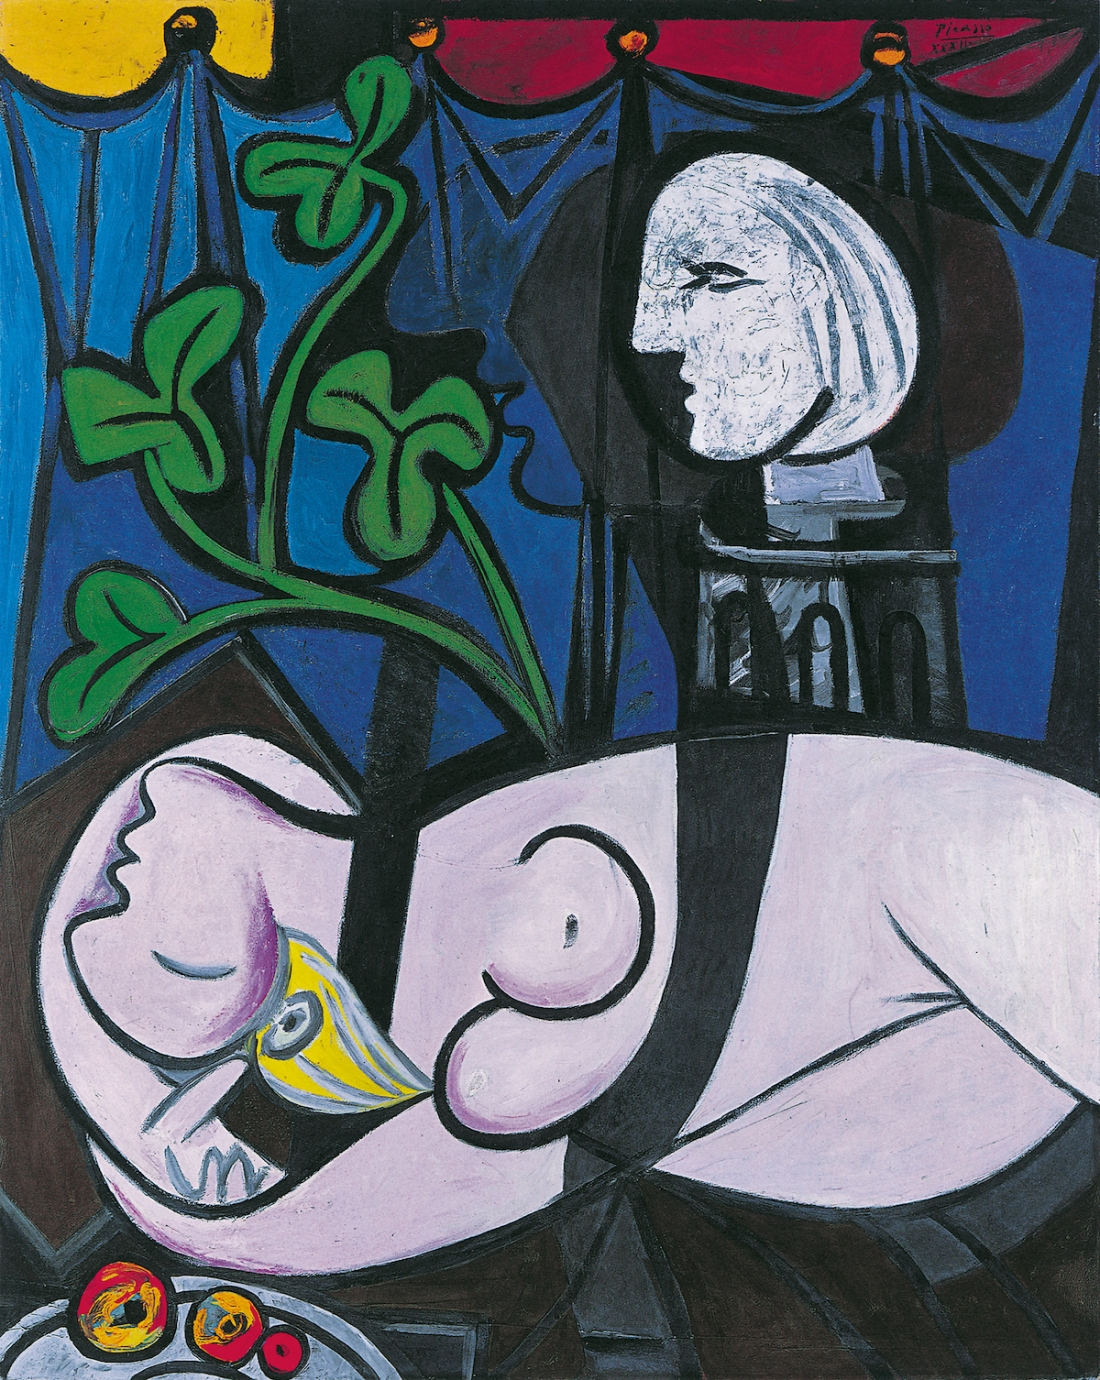 Pablo Picasso Nude, Green Leaves and Bust (Femme nue, feuilles et buste) 1932 Oil paint on canvas 1620 x 1300 mm Private Collection © Succession Picasso/ DACS London, 2017